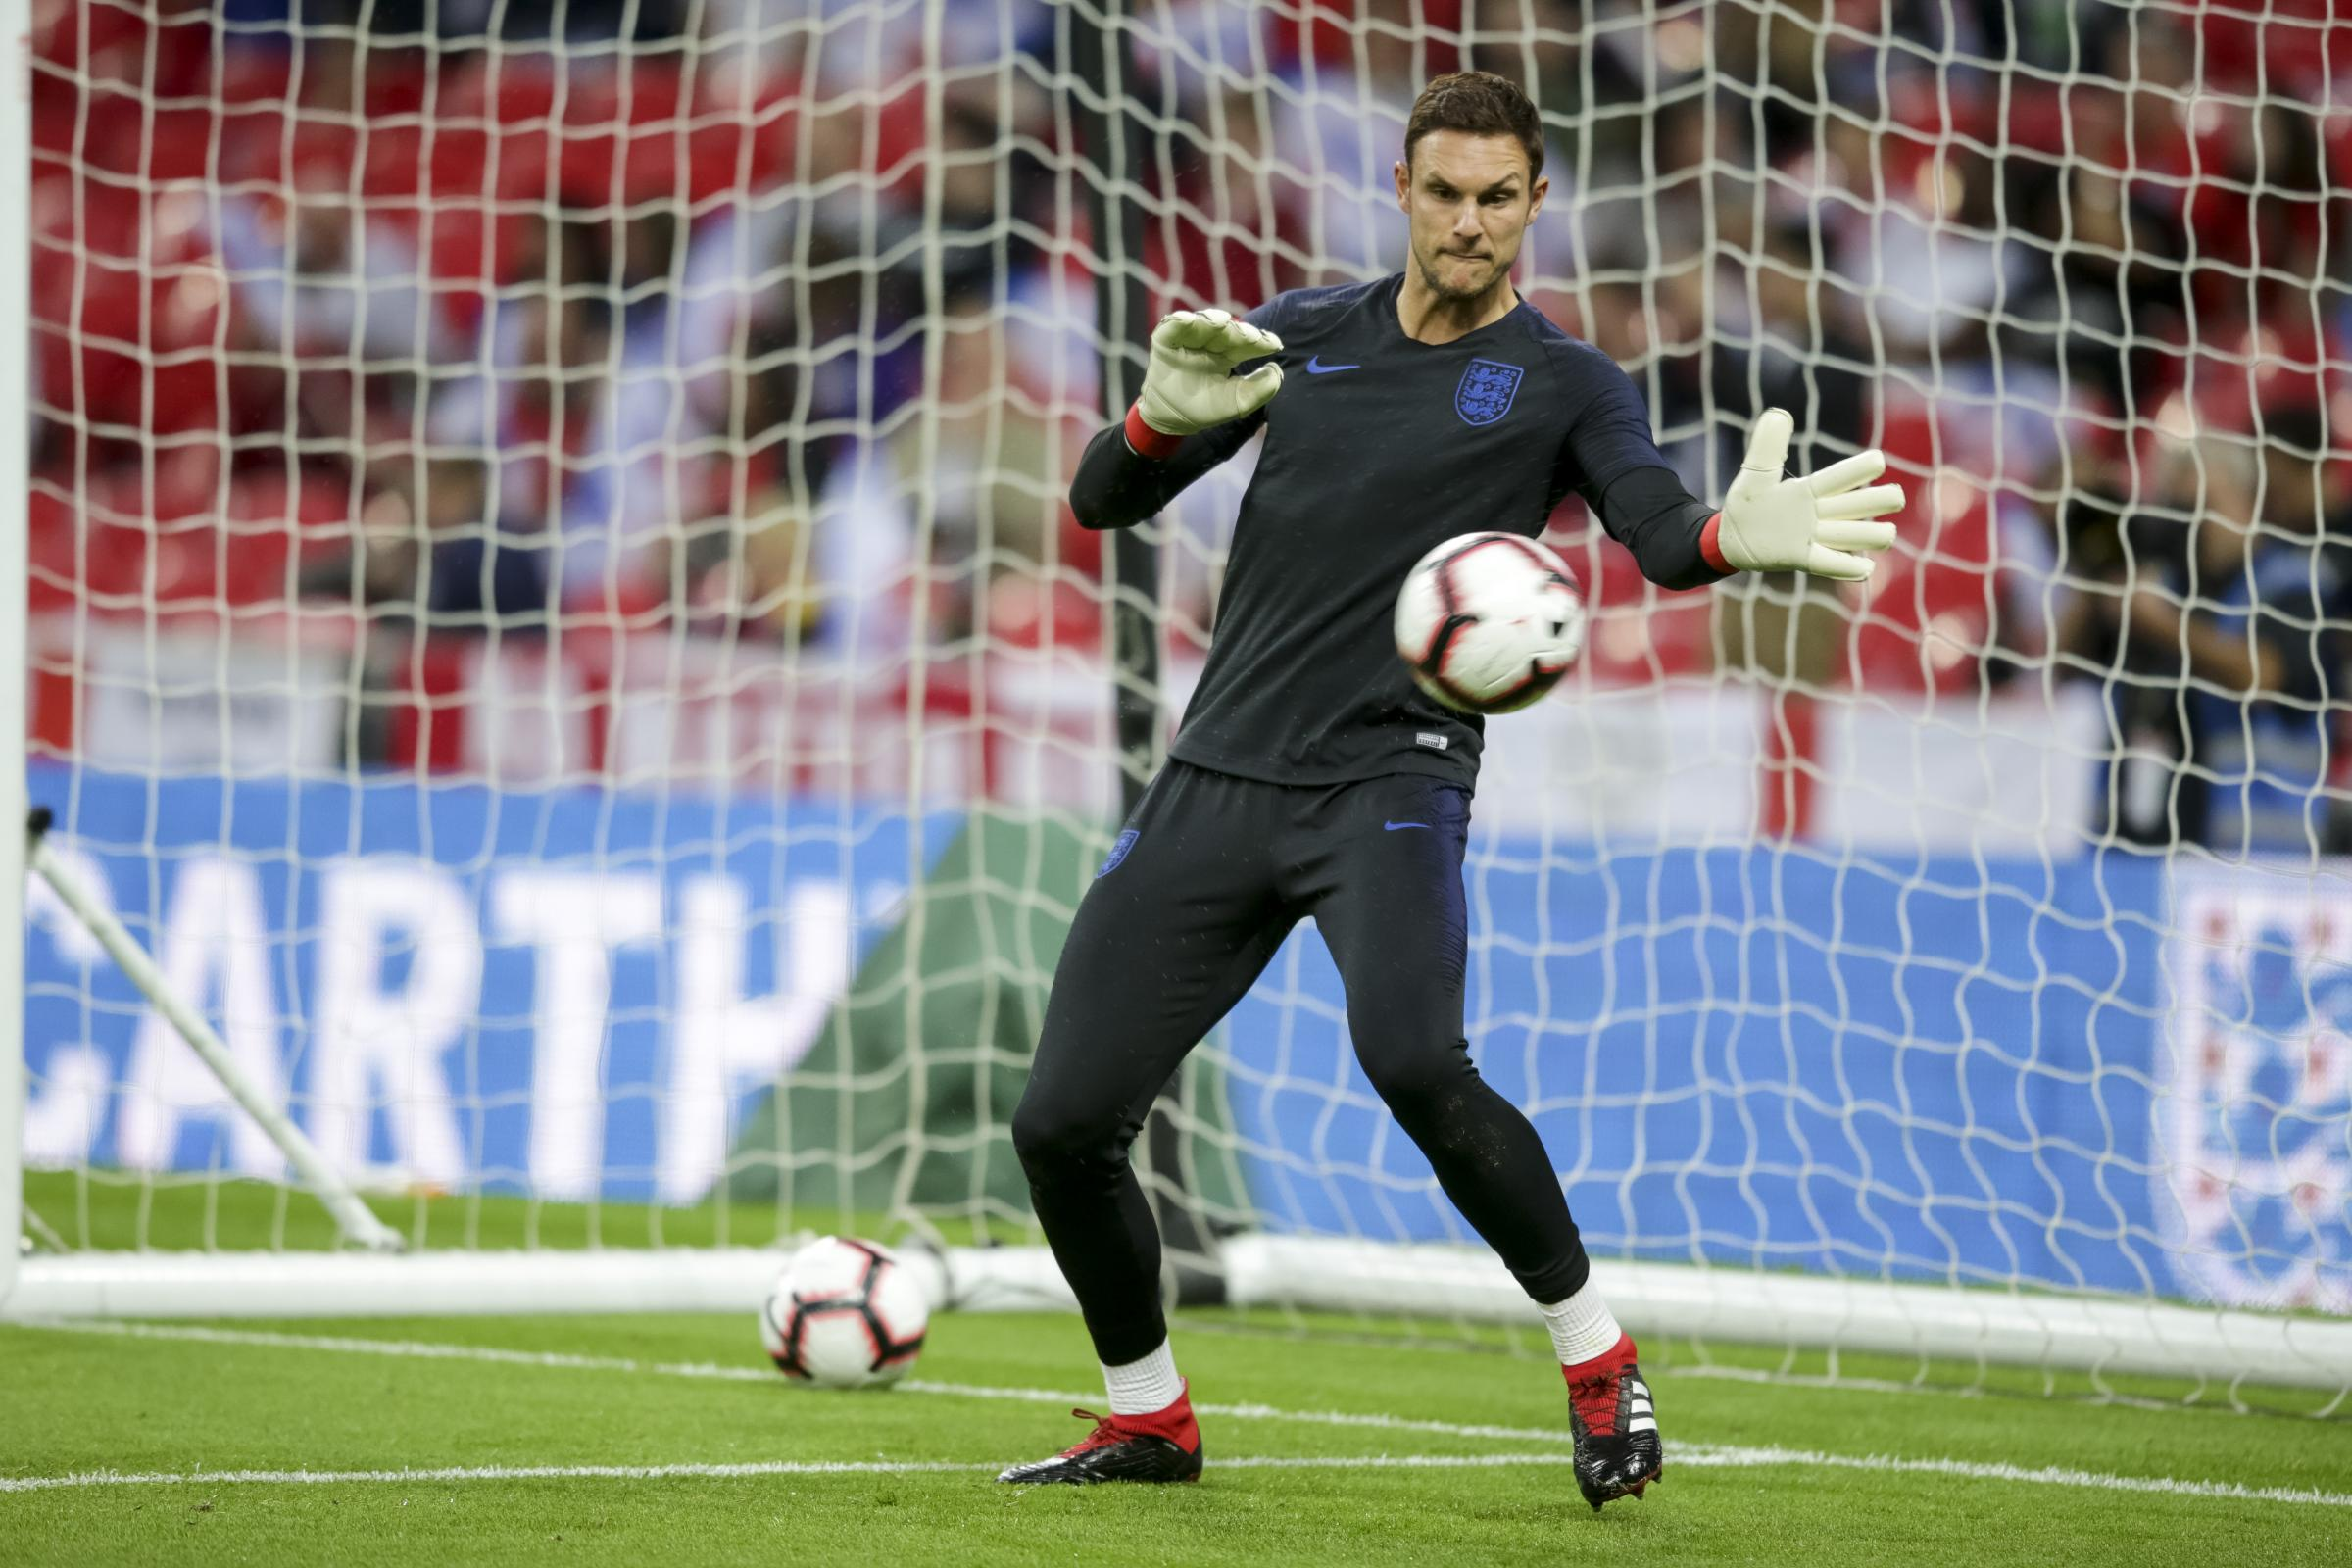 Alex McCarthy of England during the Uefa Nations League match between England and Spain at Wembley Stadium, London, England on 8 September 2018. Photo by Robin Jones/Digital South..